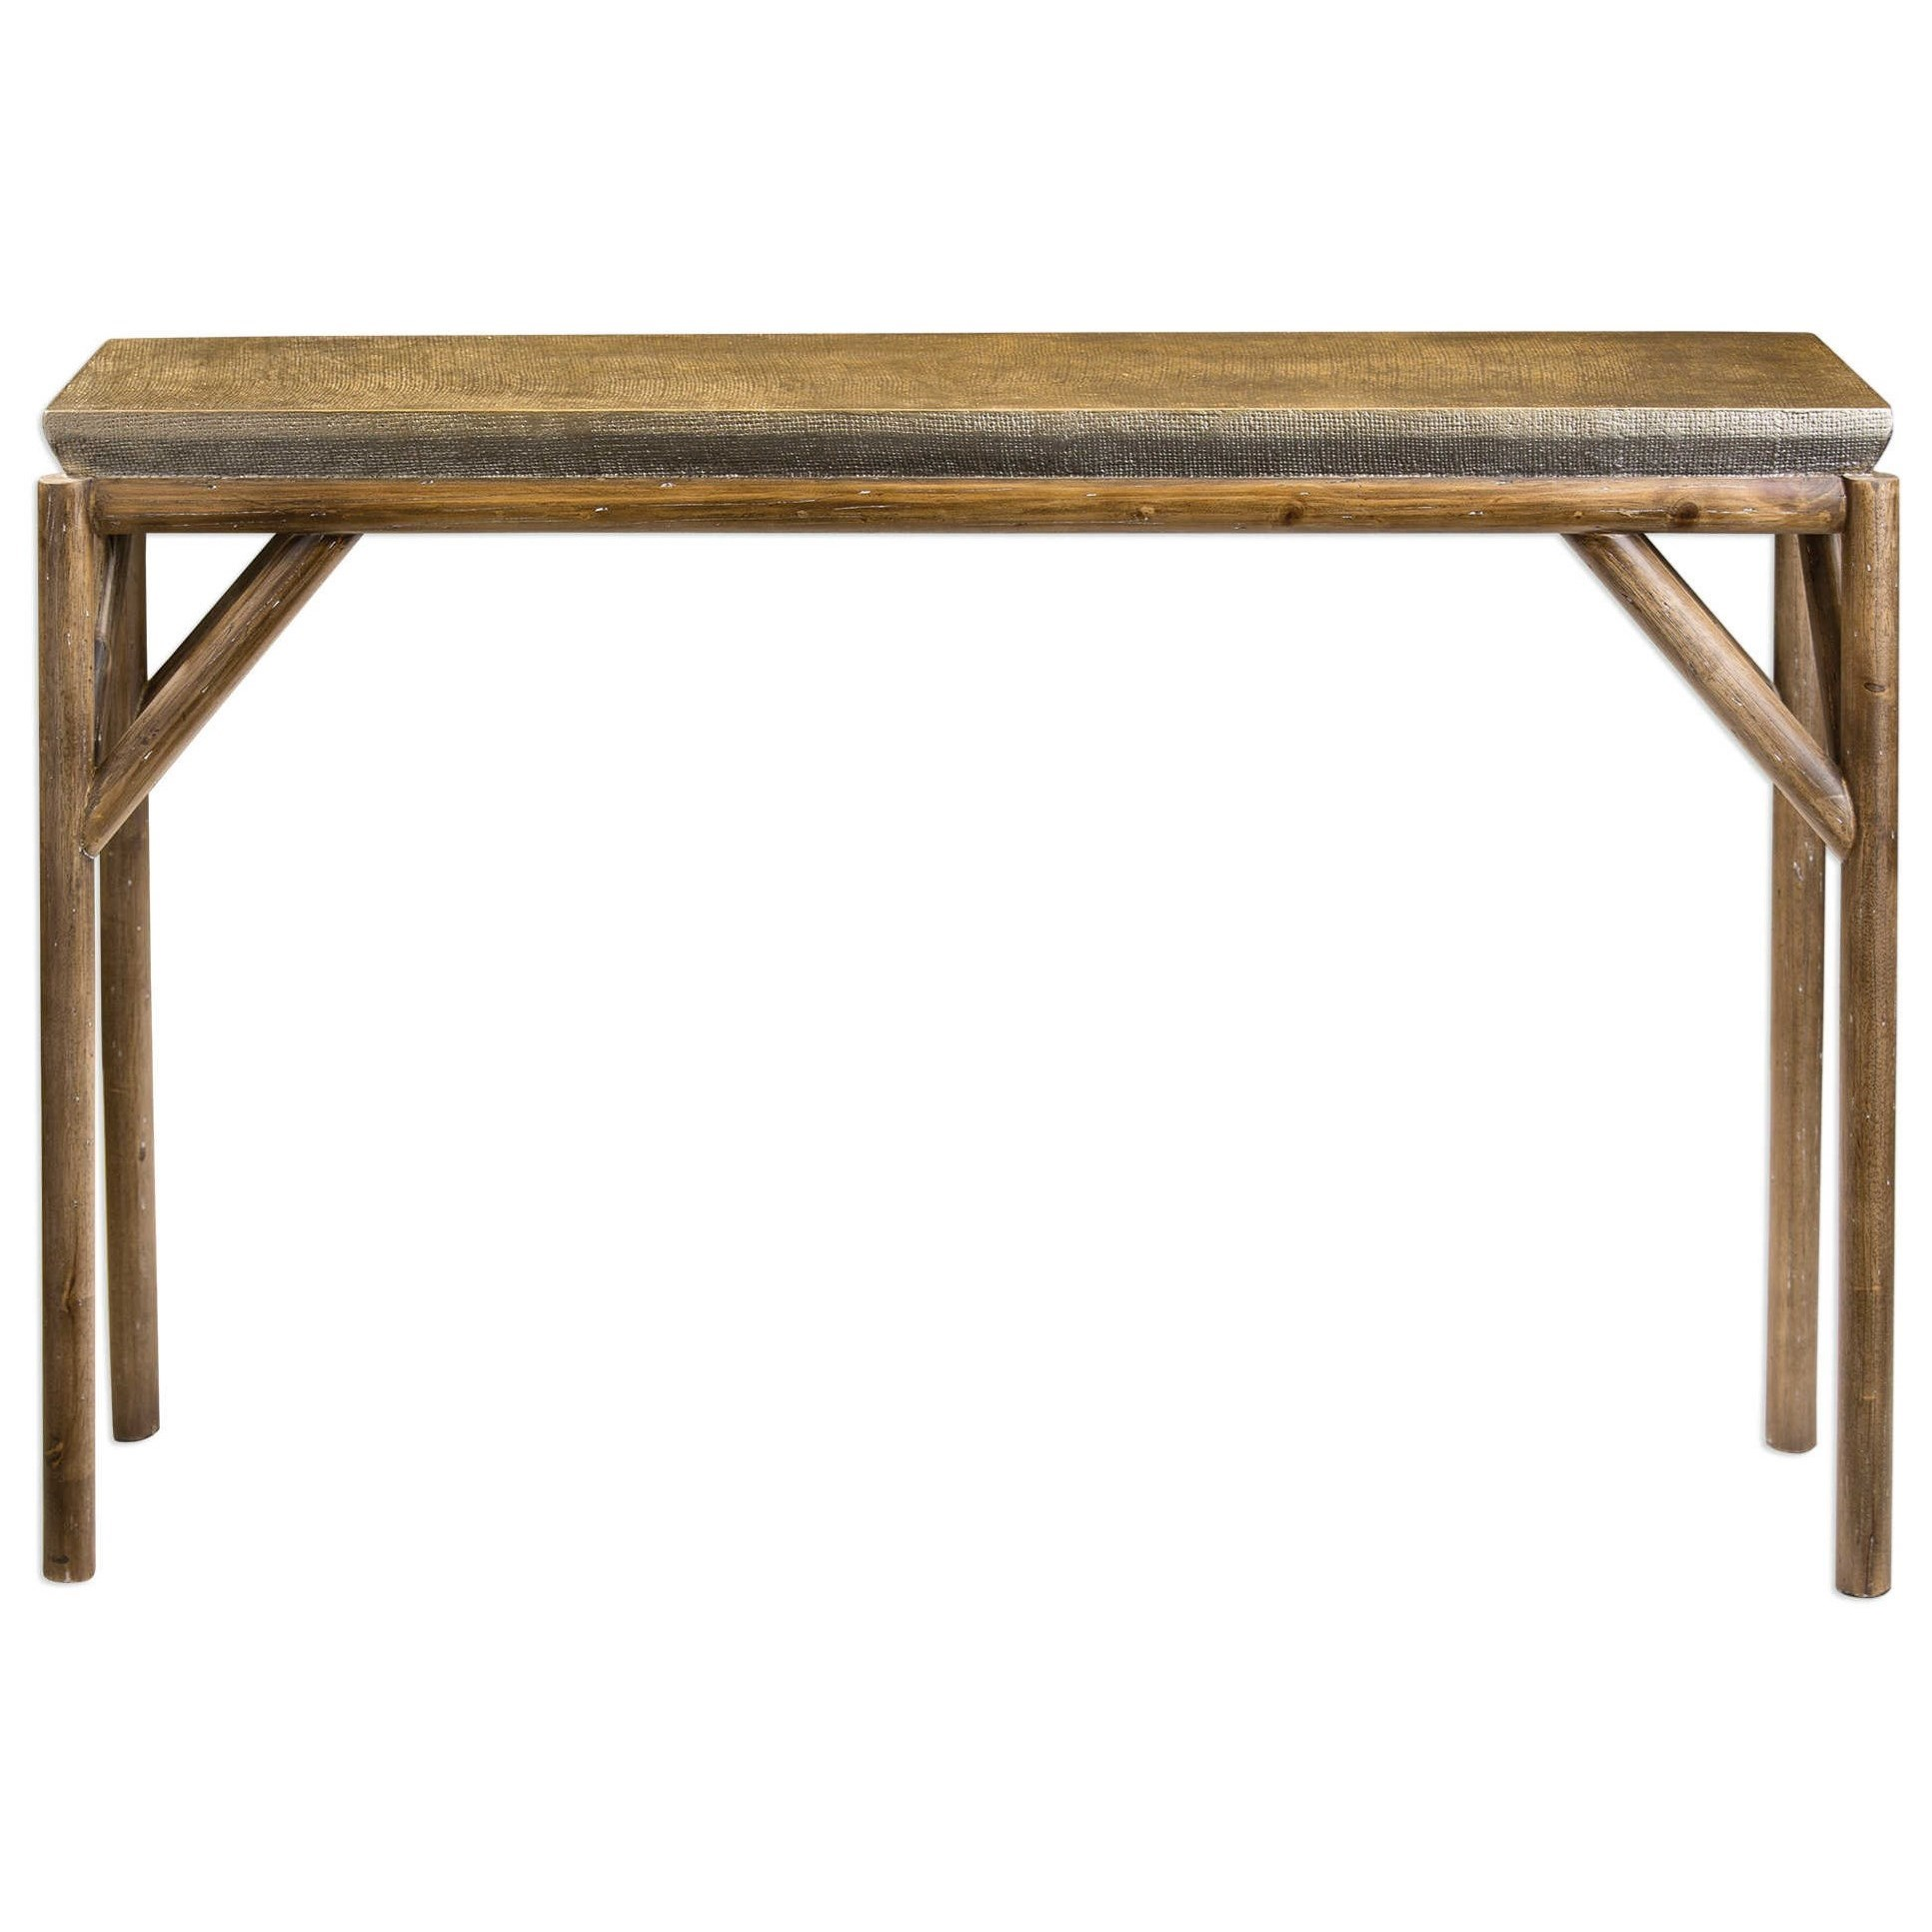 Uttermost Accent Furniture Kanti Metallic Champagne Console Table - Item Number: 25963